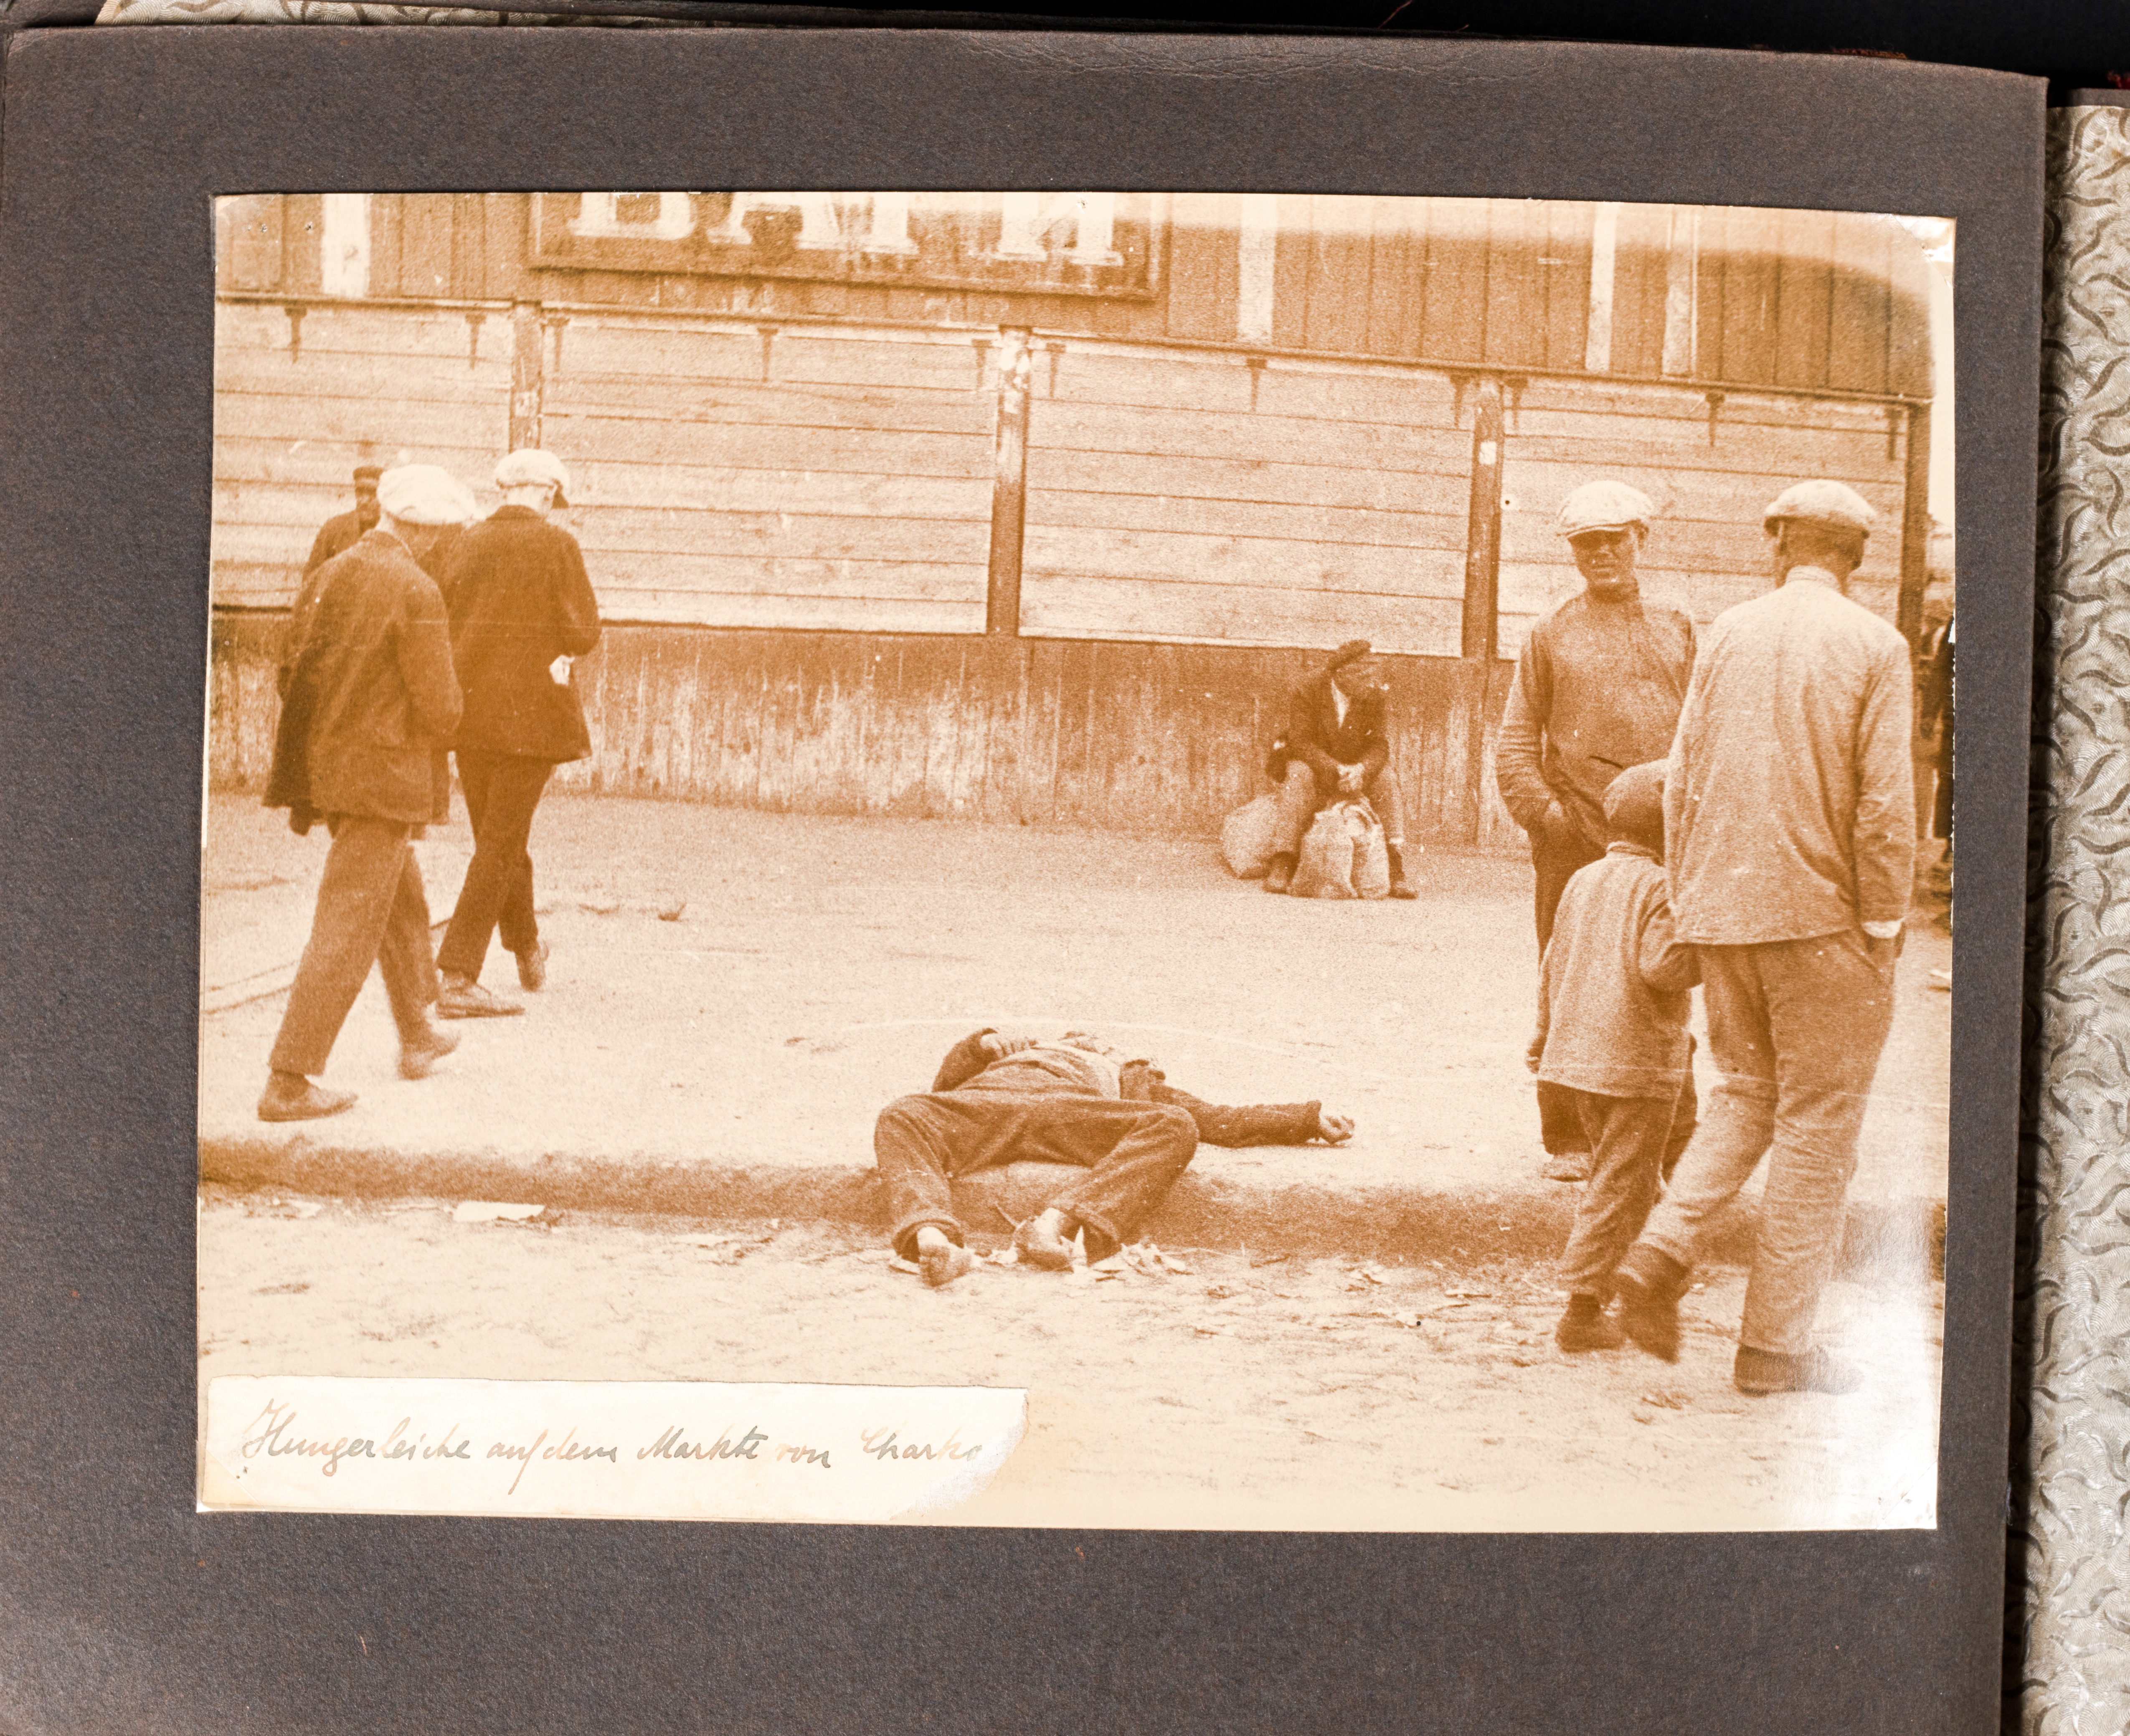 A famine victim lies dead near a market in Kharkiv with some men pausing to look while others pass by